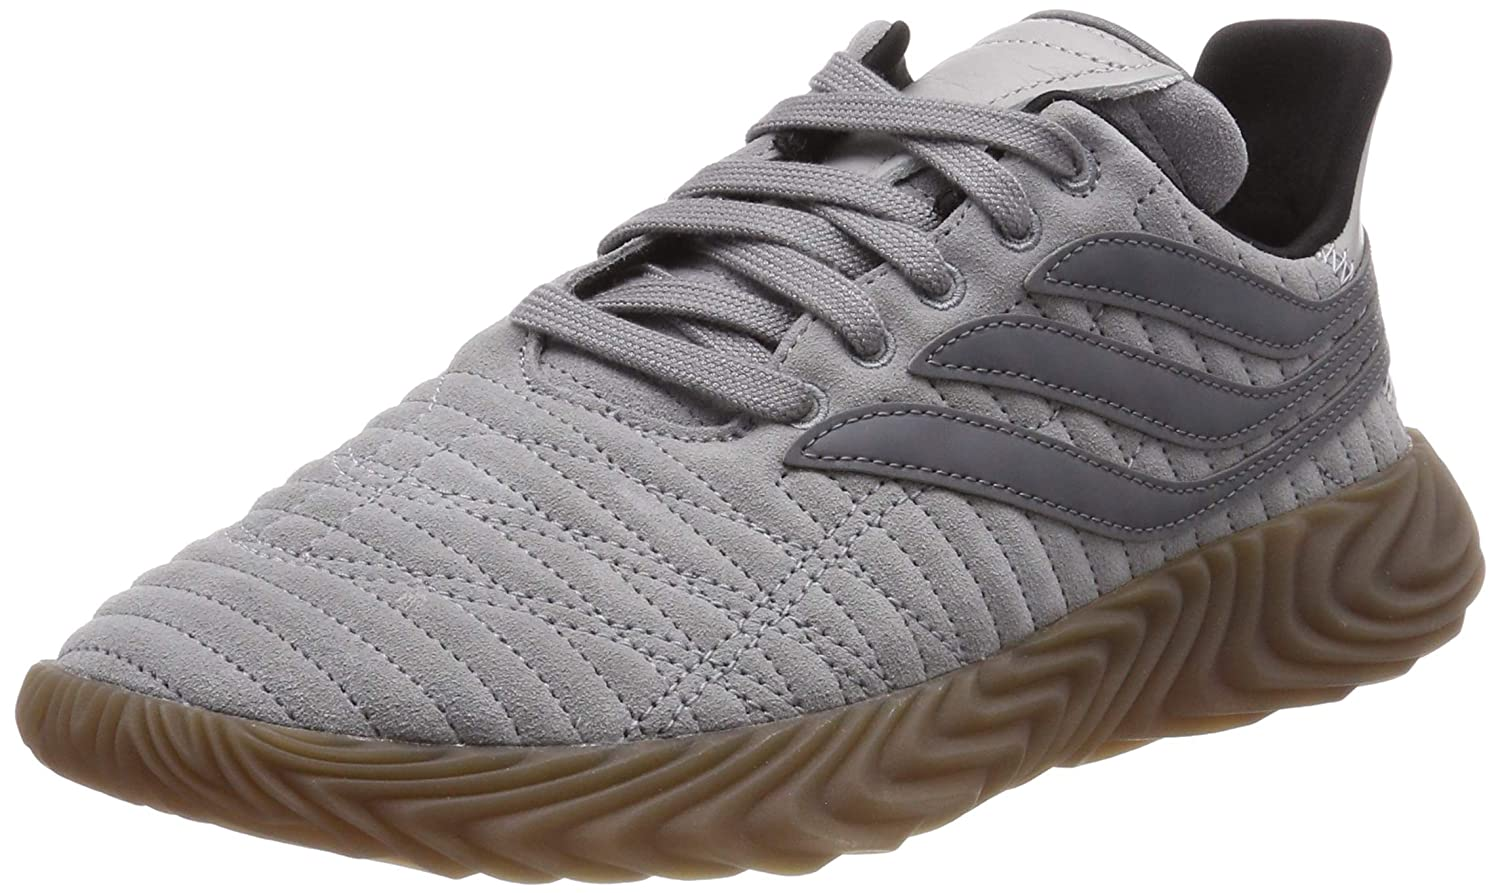 Grey (Grey Three F17 Grey Four F17 Grey Two F17 Grey Three F17 Grey Four F17 Grey Two F17) adidas Men's's Sobakov Gymnastics shoes